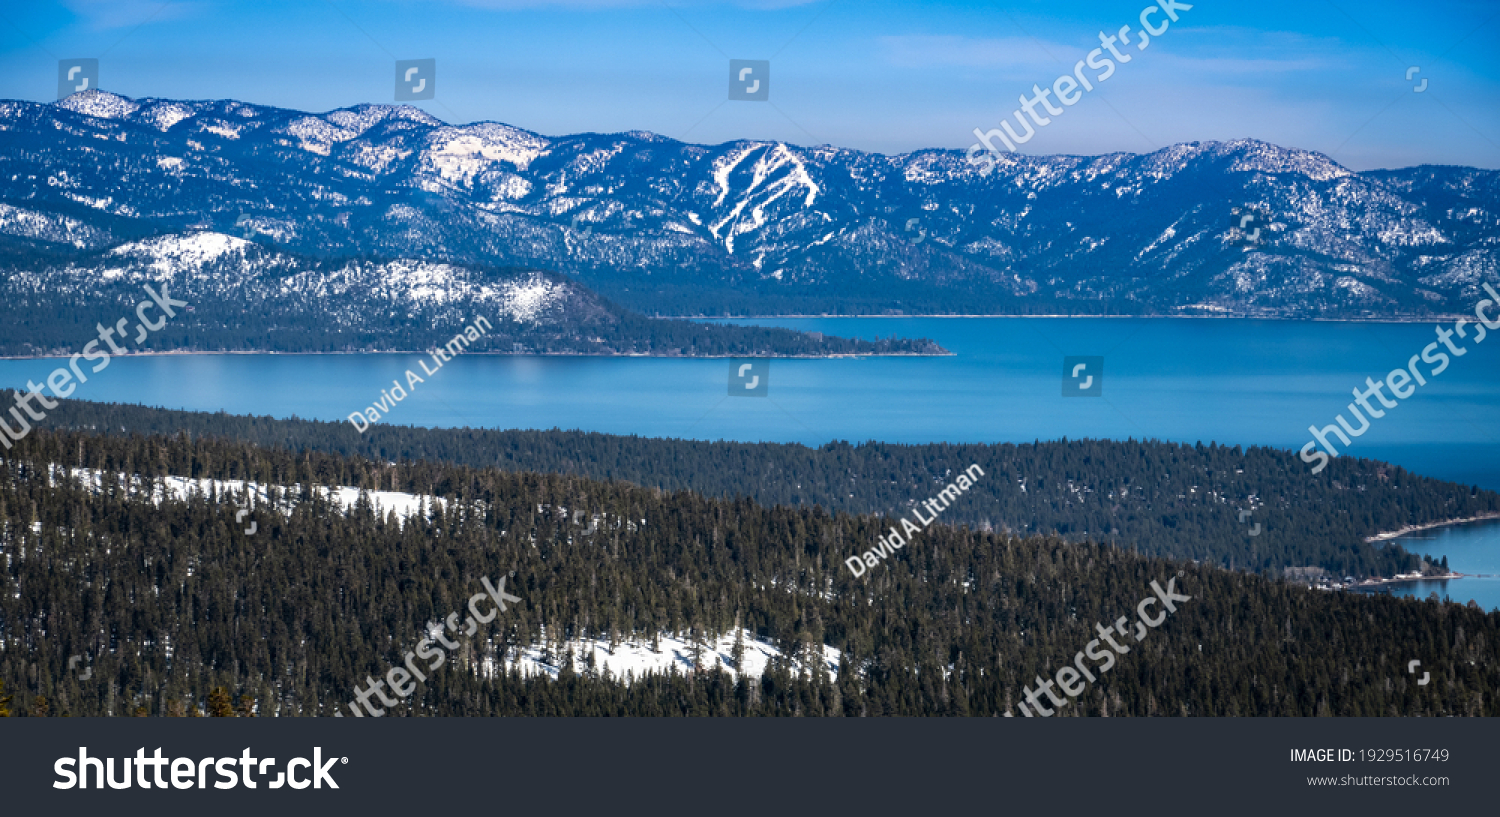 Scenic view of Lake Tahoe, in the Sierra Nevada Mountain Range of California, as shot from Alpine Meadows, with the runs Diamond Peak ski resort in the background.